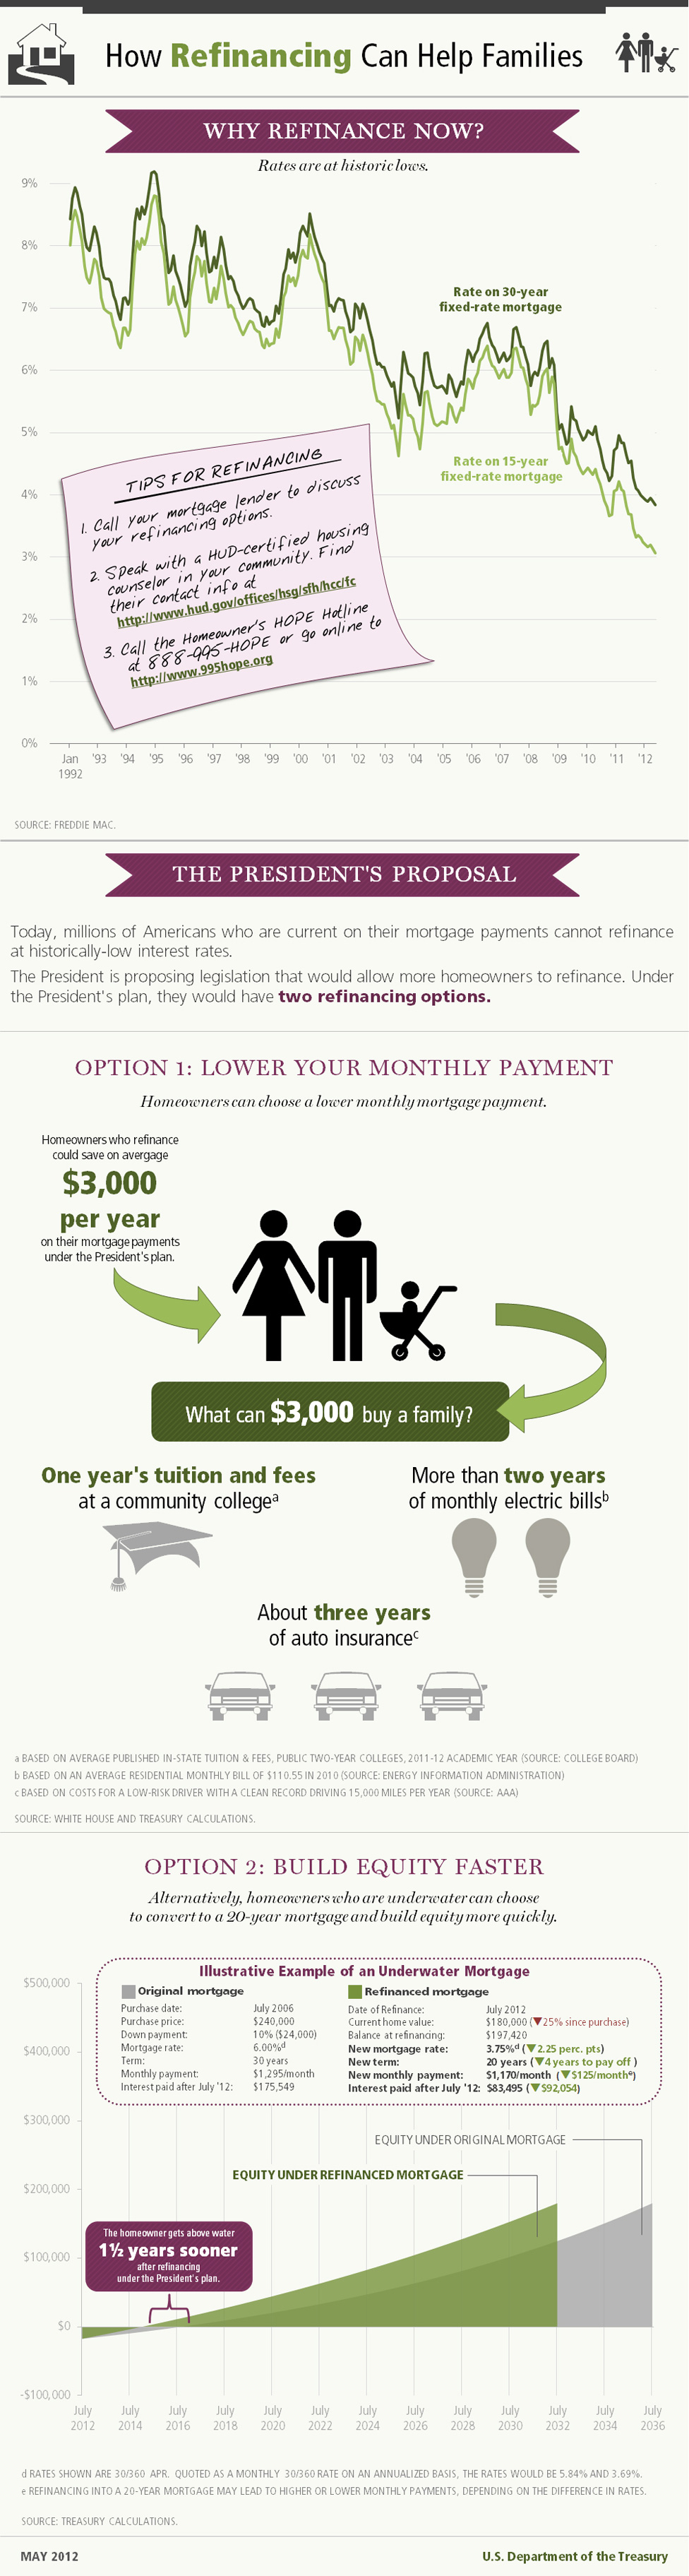 Infographic: How Refinancing Can Help Families